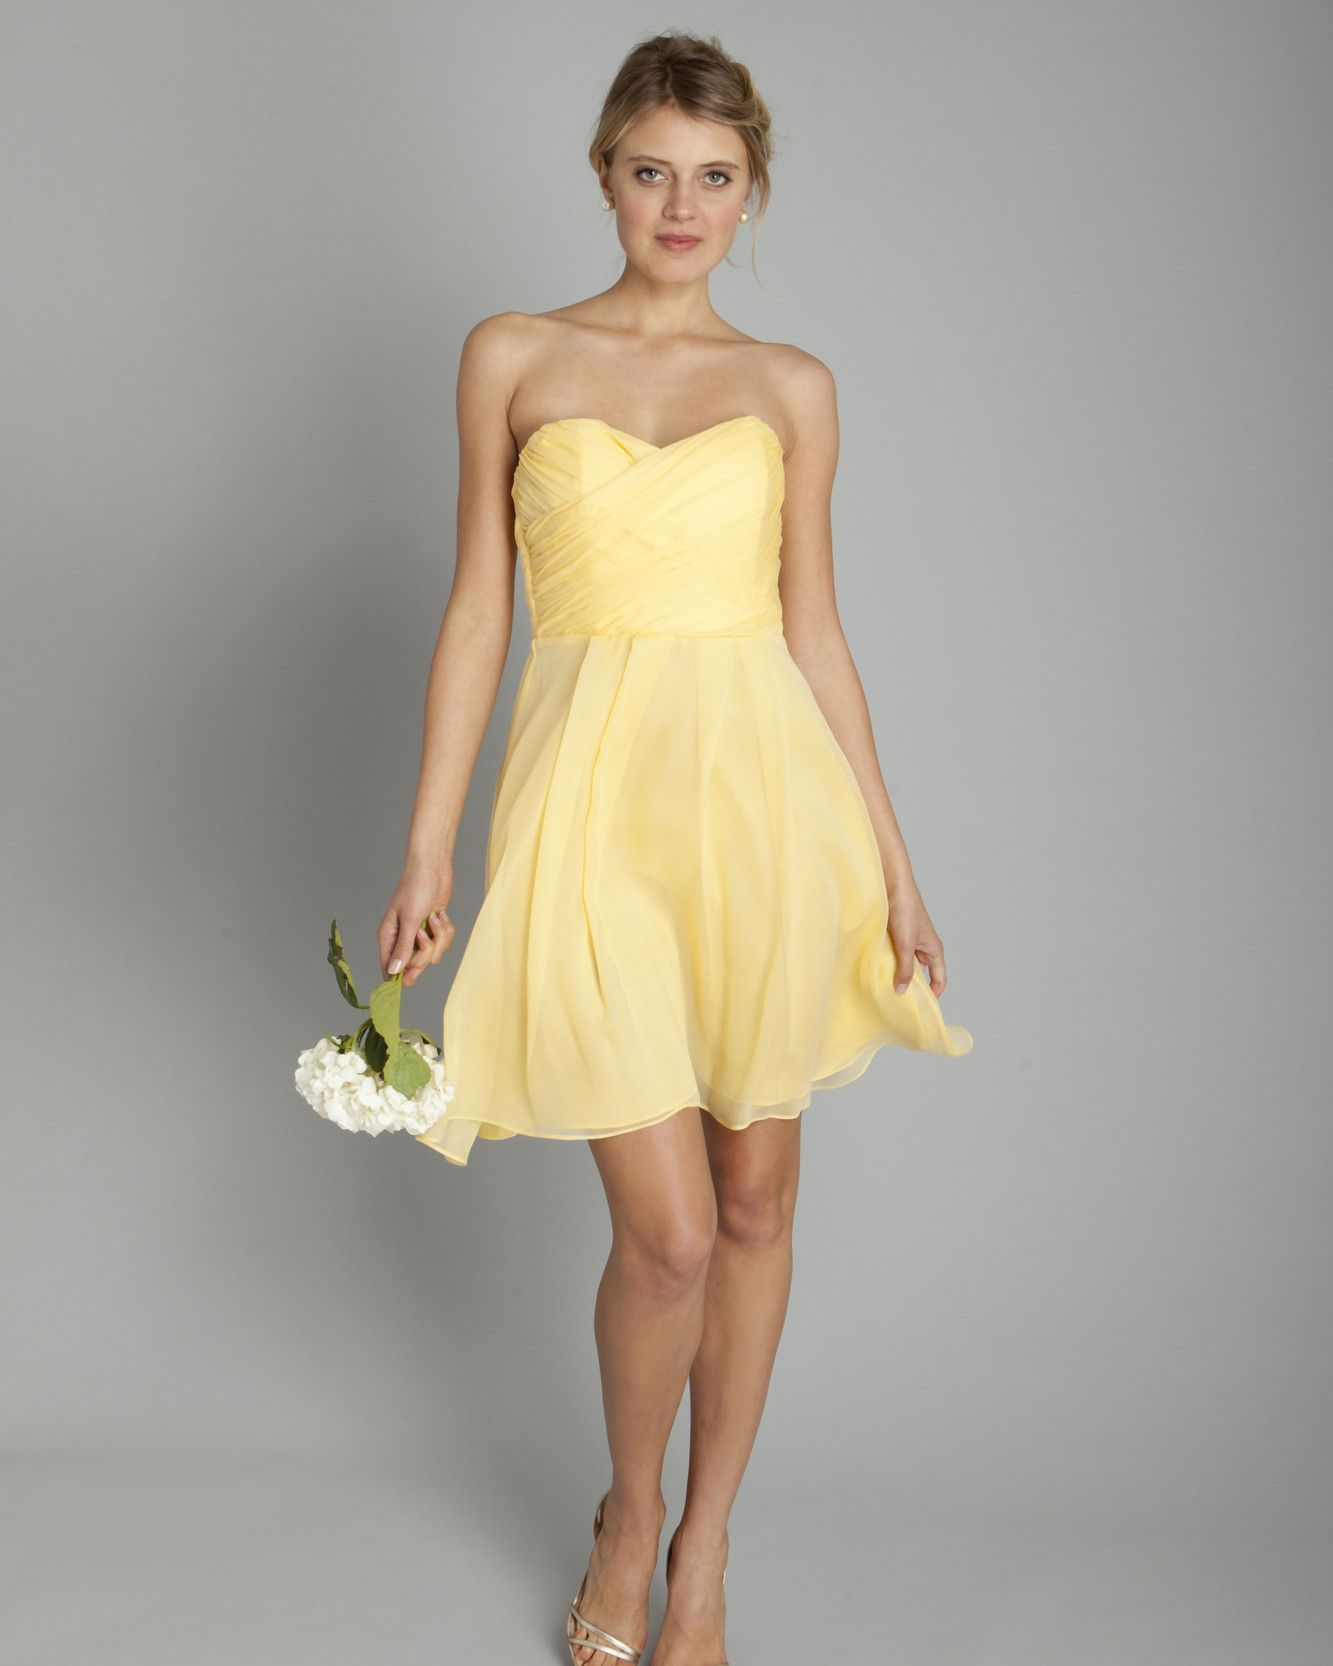 Bridesmaid Dresses For Beach Weddings Yellow Bridesmaid Dresses Short Yellow Bridesmaid Dresses Yellow Bridesmaid Dresses Spring